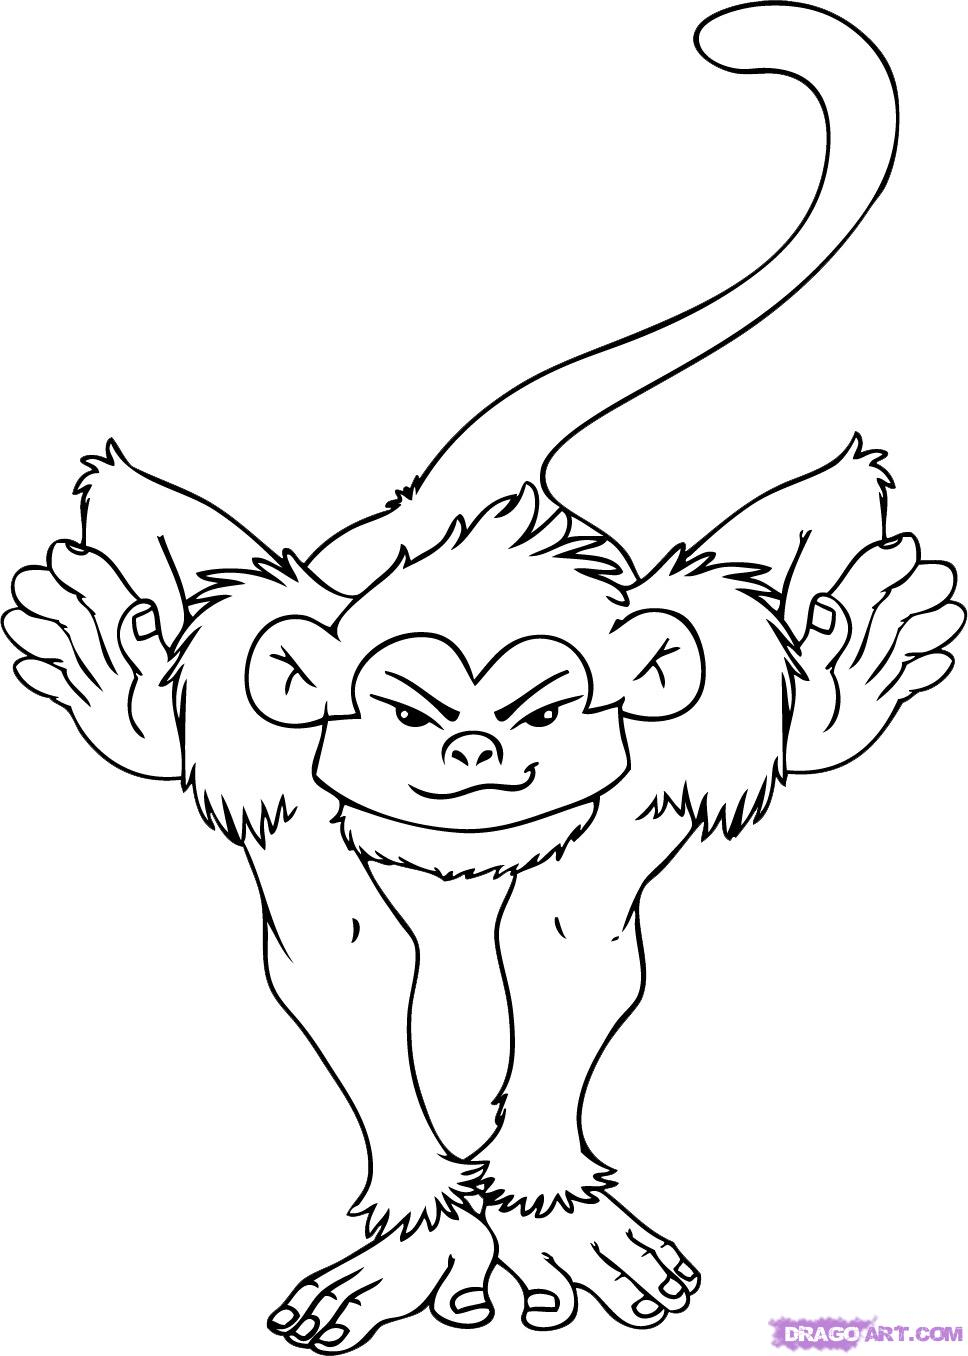 968x1356 Drawing Of A Monkey How To Draw A Spider Monkey, Spider Monkey